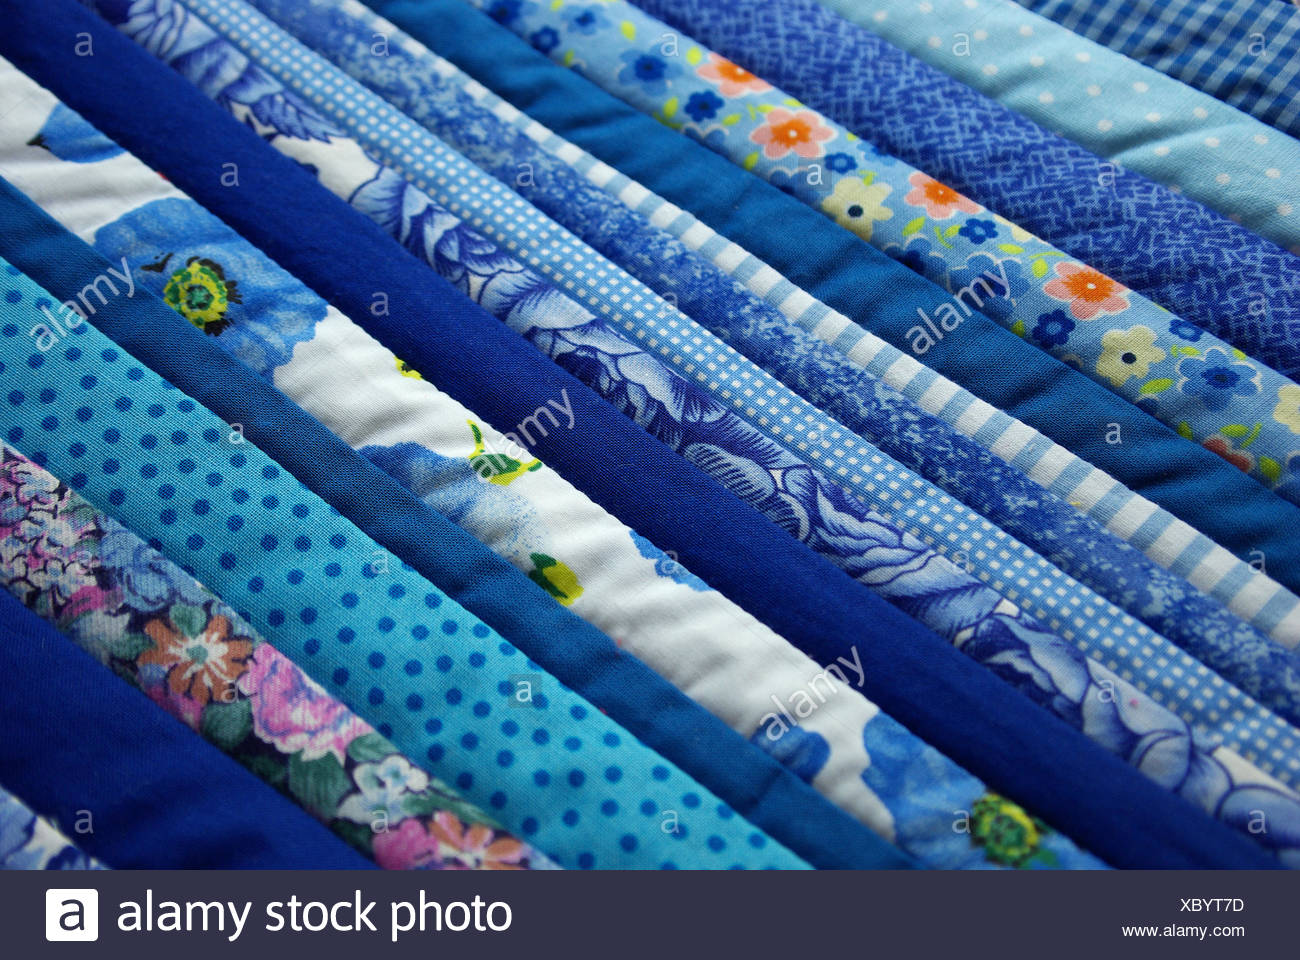 Quilt Oberhausen Recyceling Stock Photos Recyceling Stock Images Alamy